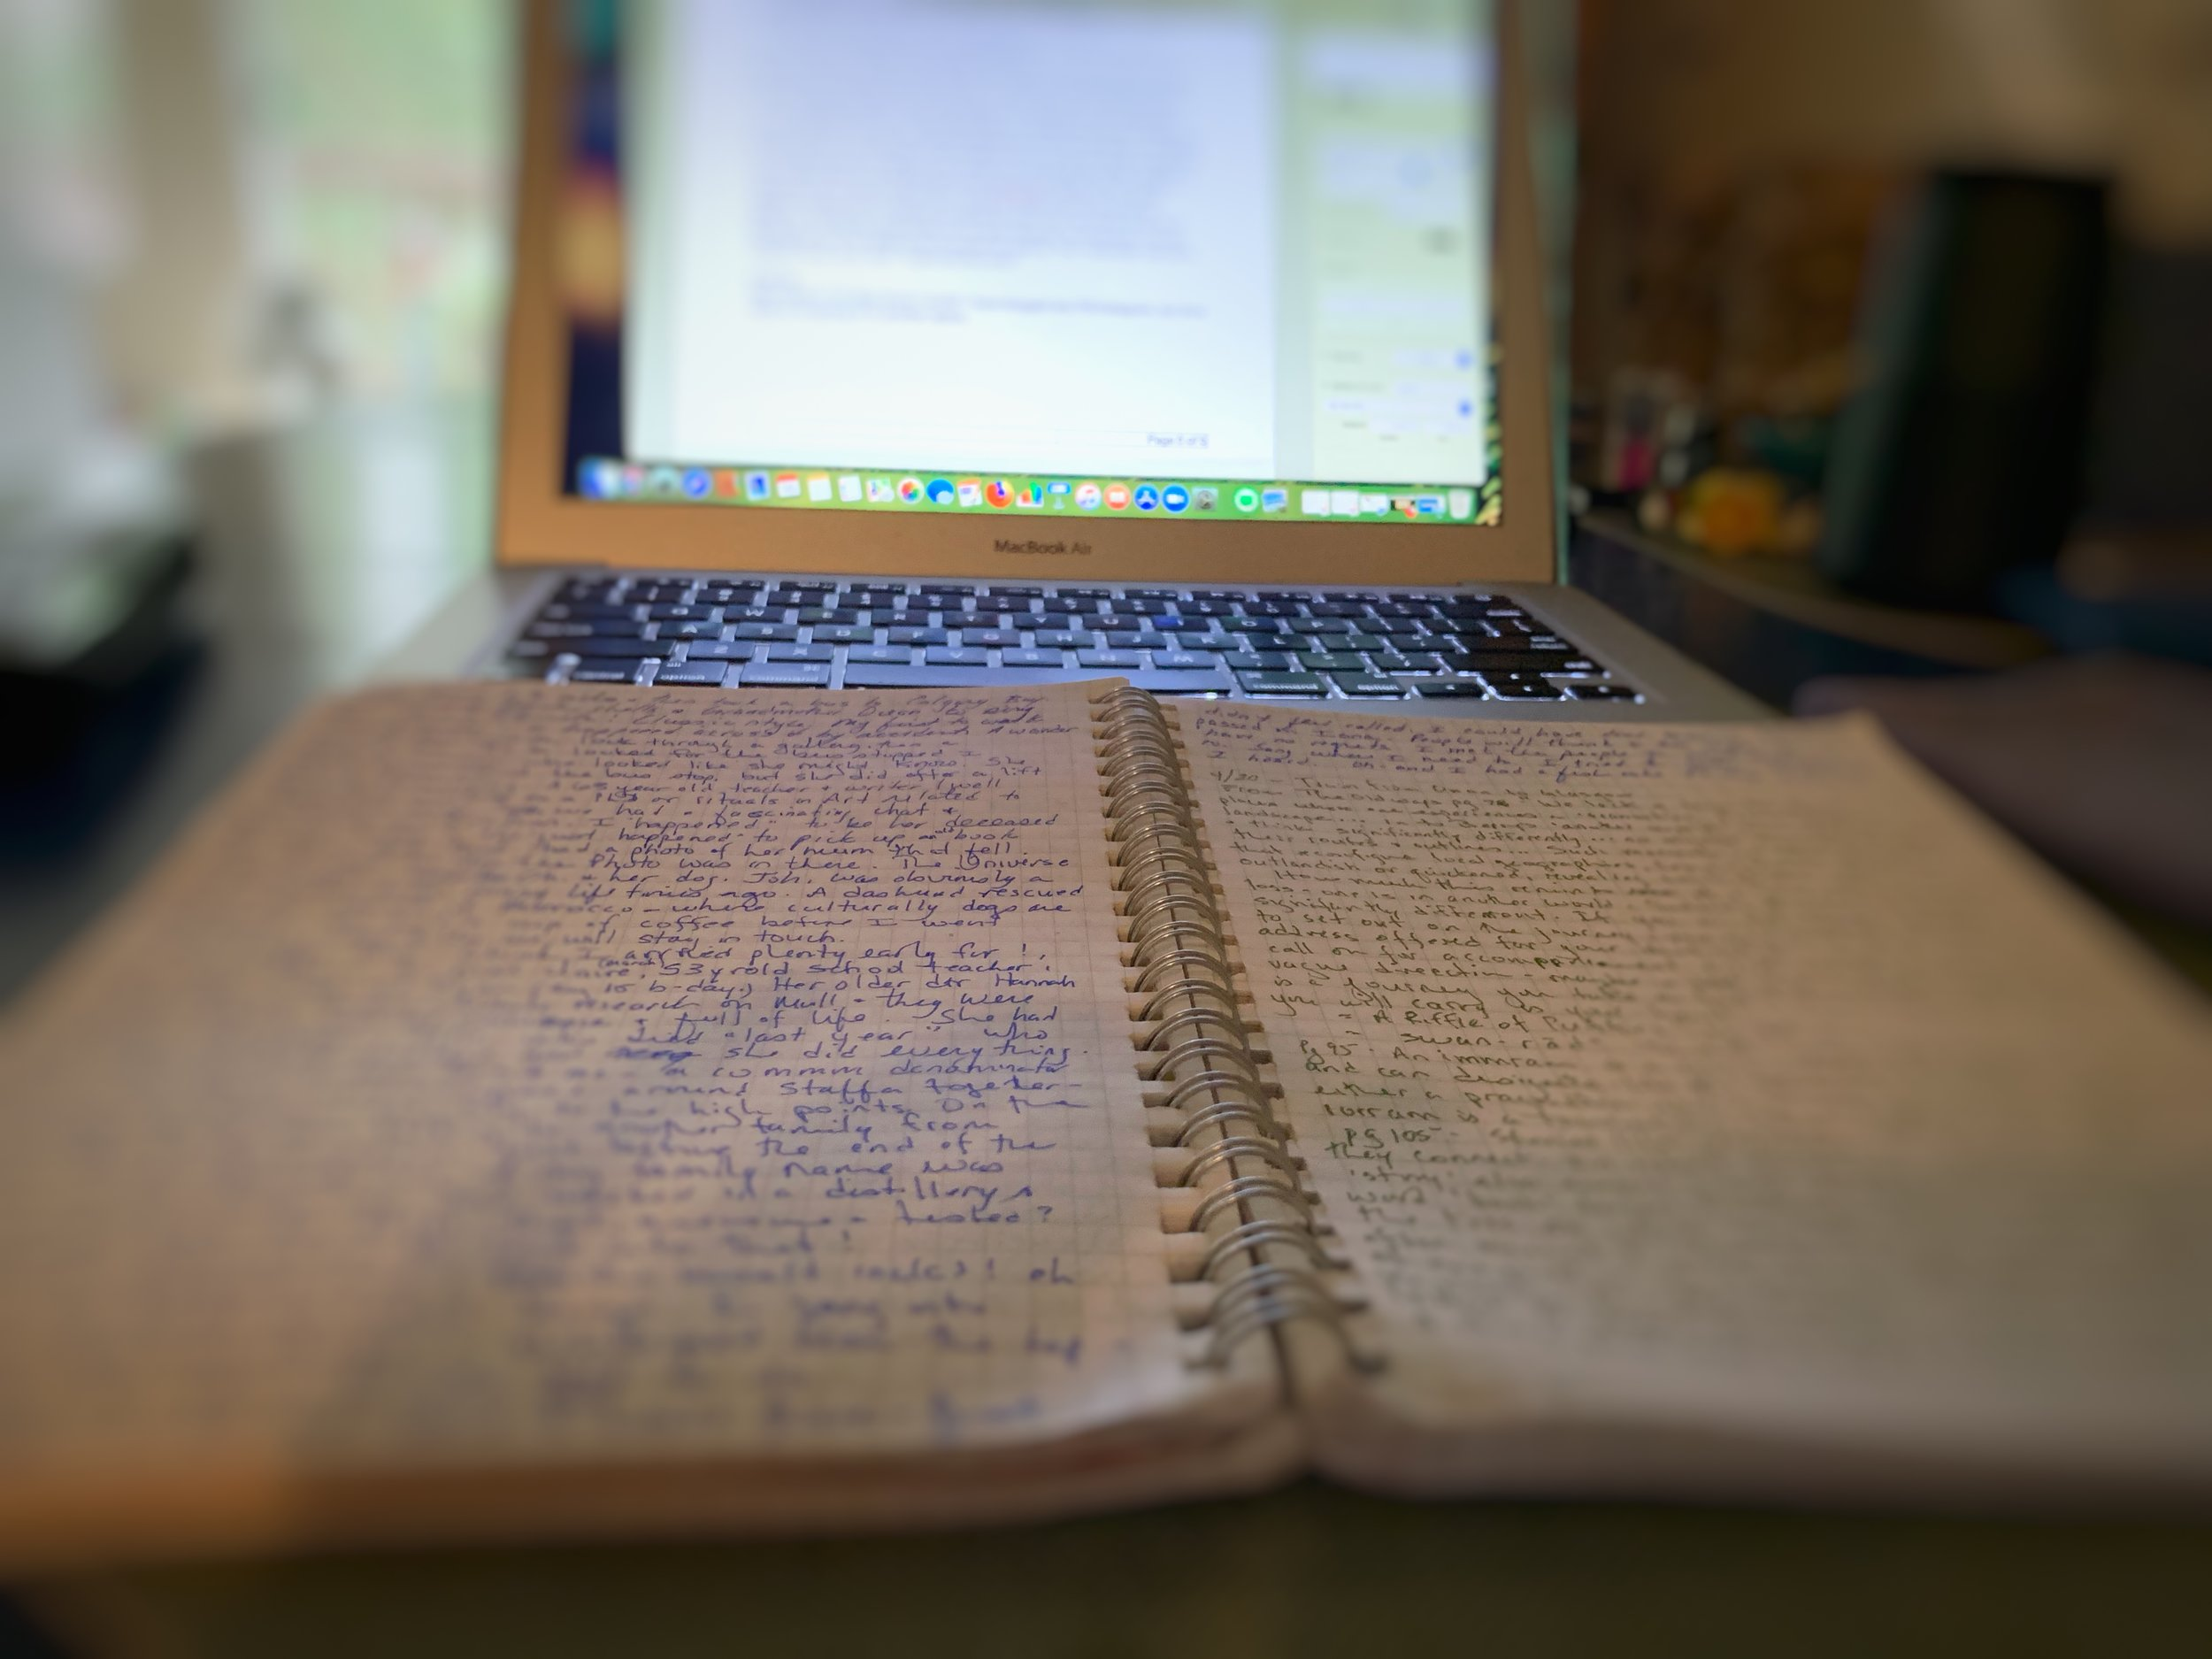 Transcribing my hand-written journal from my sojourn. Sometimes it is difficult to read my own writing! There are times I have to stop and just rest in what I wrote. And remember the beauty, the stories, the feelings that arose then and sit with the ones stirring now.